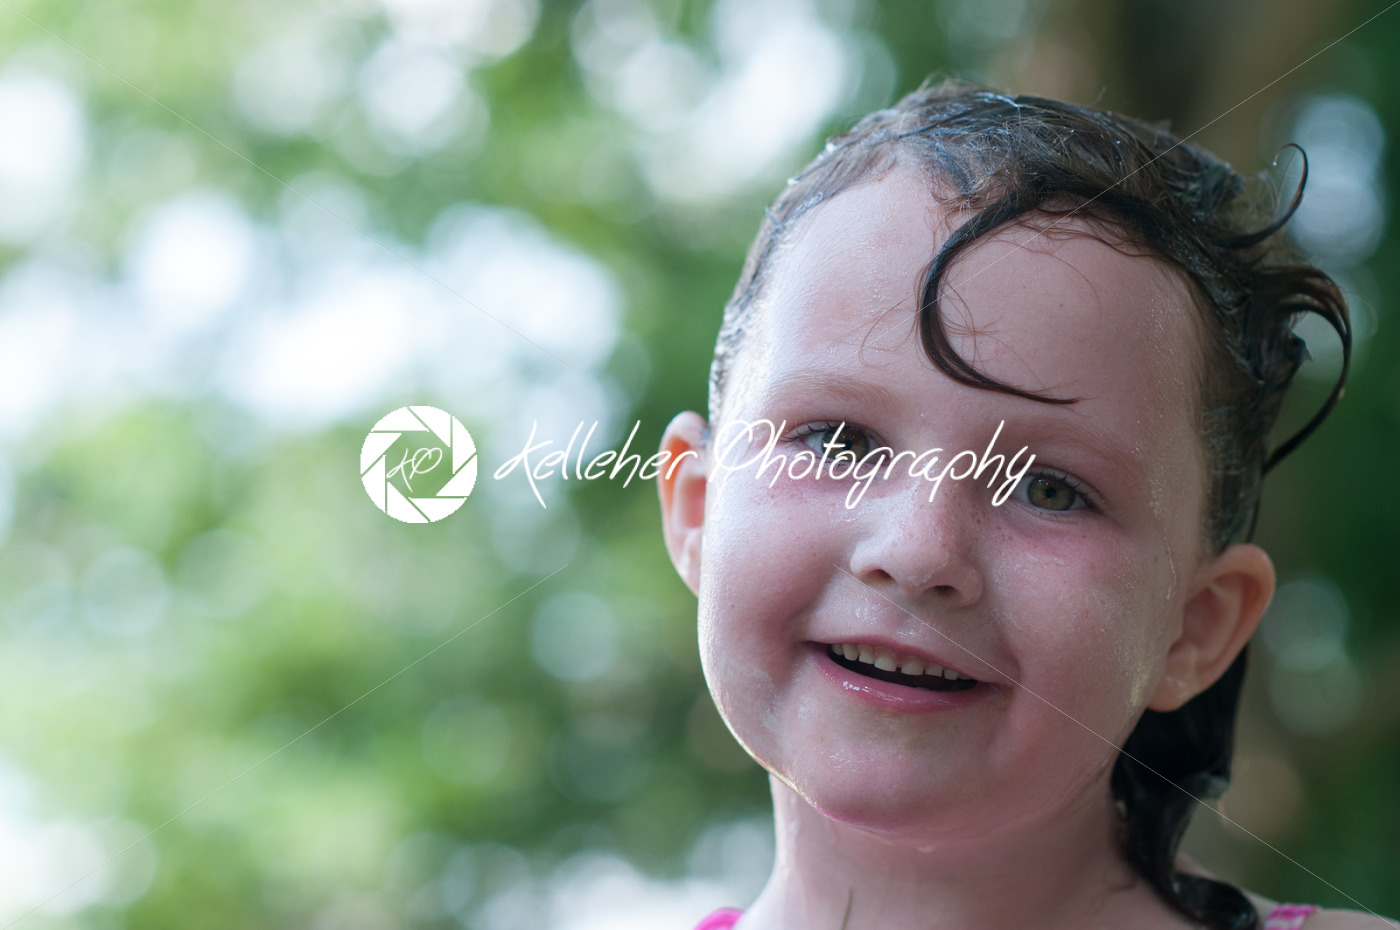 Little girl outside with wet hair after swimming - Kelleher Photography Store